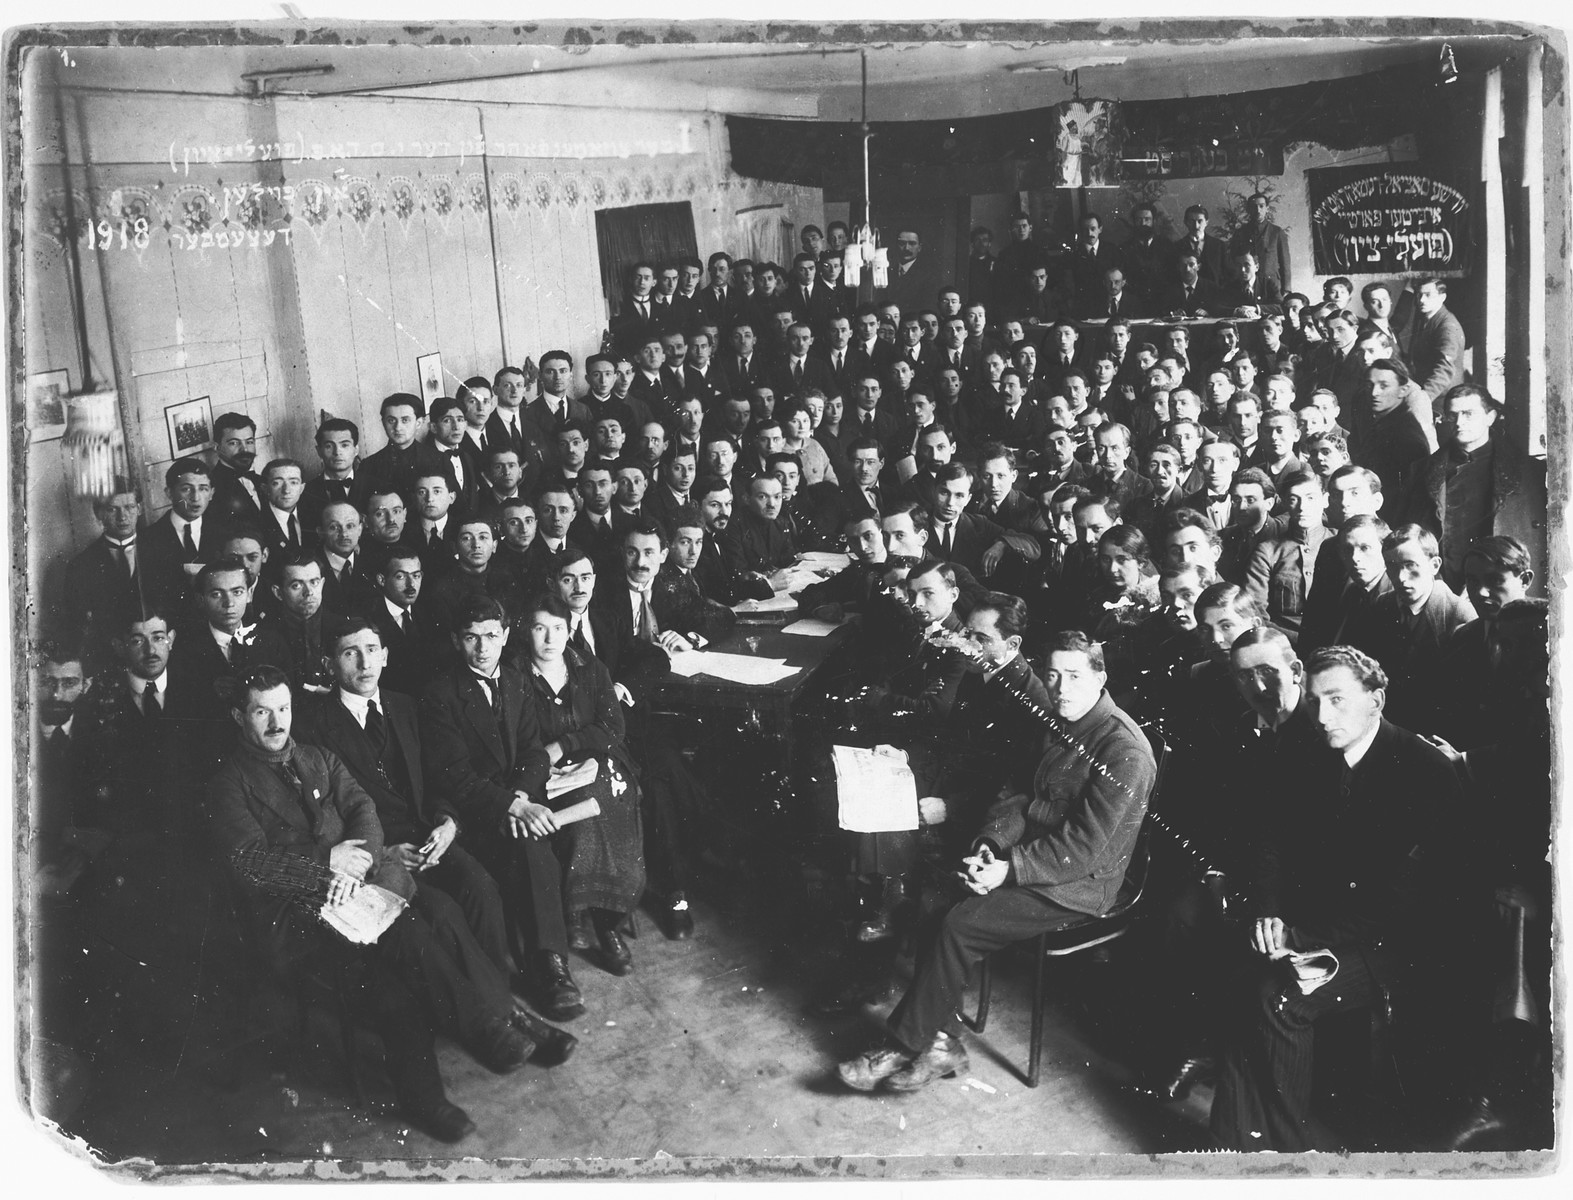 Jewish workers attend a Poale Zion conference in Warsaw at the end of World War I.